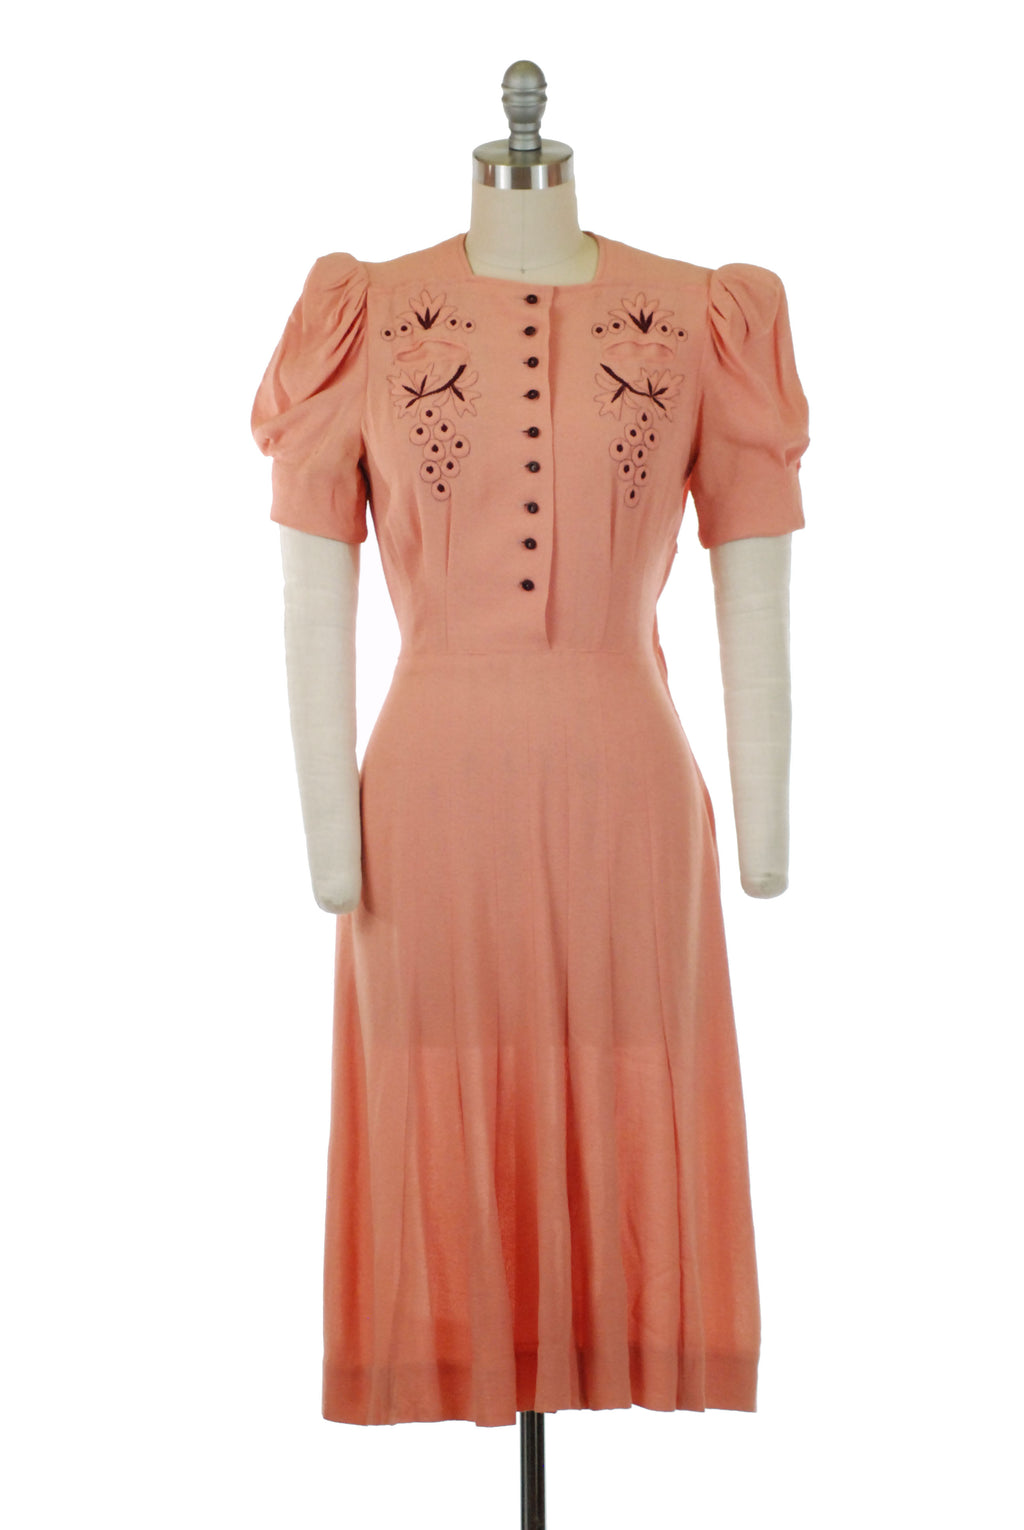 Exquisite Late 1930s Puffed Sleeve Dream Dress in Highly Textured Crepe with Trapunto and Burgundy Embroidery